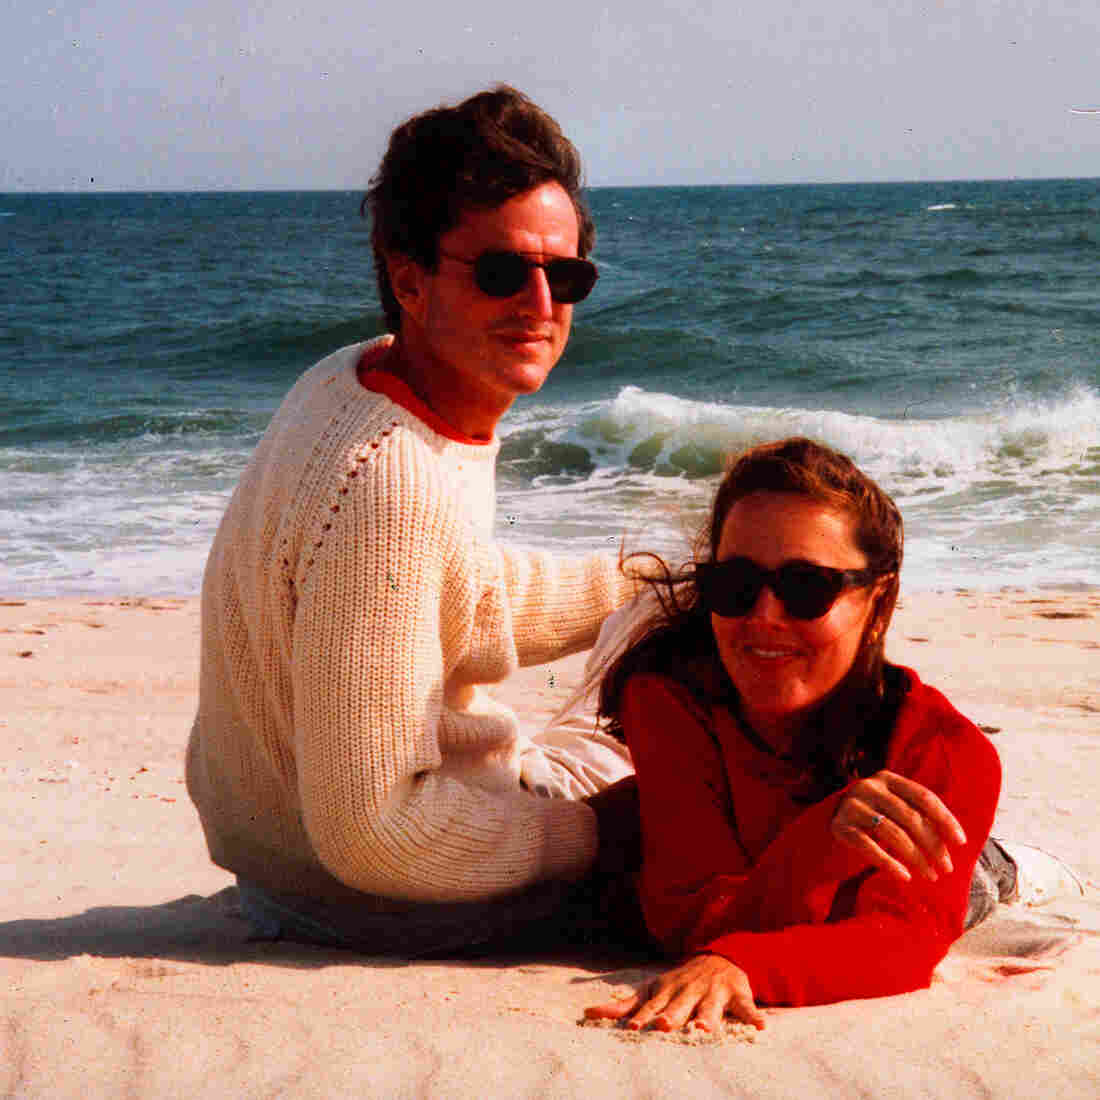 Laury Sacks and her husband, Eric. The actress and writer developed frontotemporal dementia in her late 40s and died in 2008 at age 52.